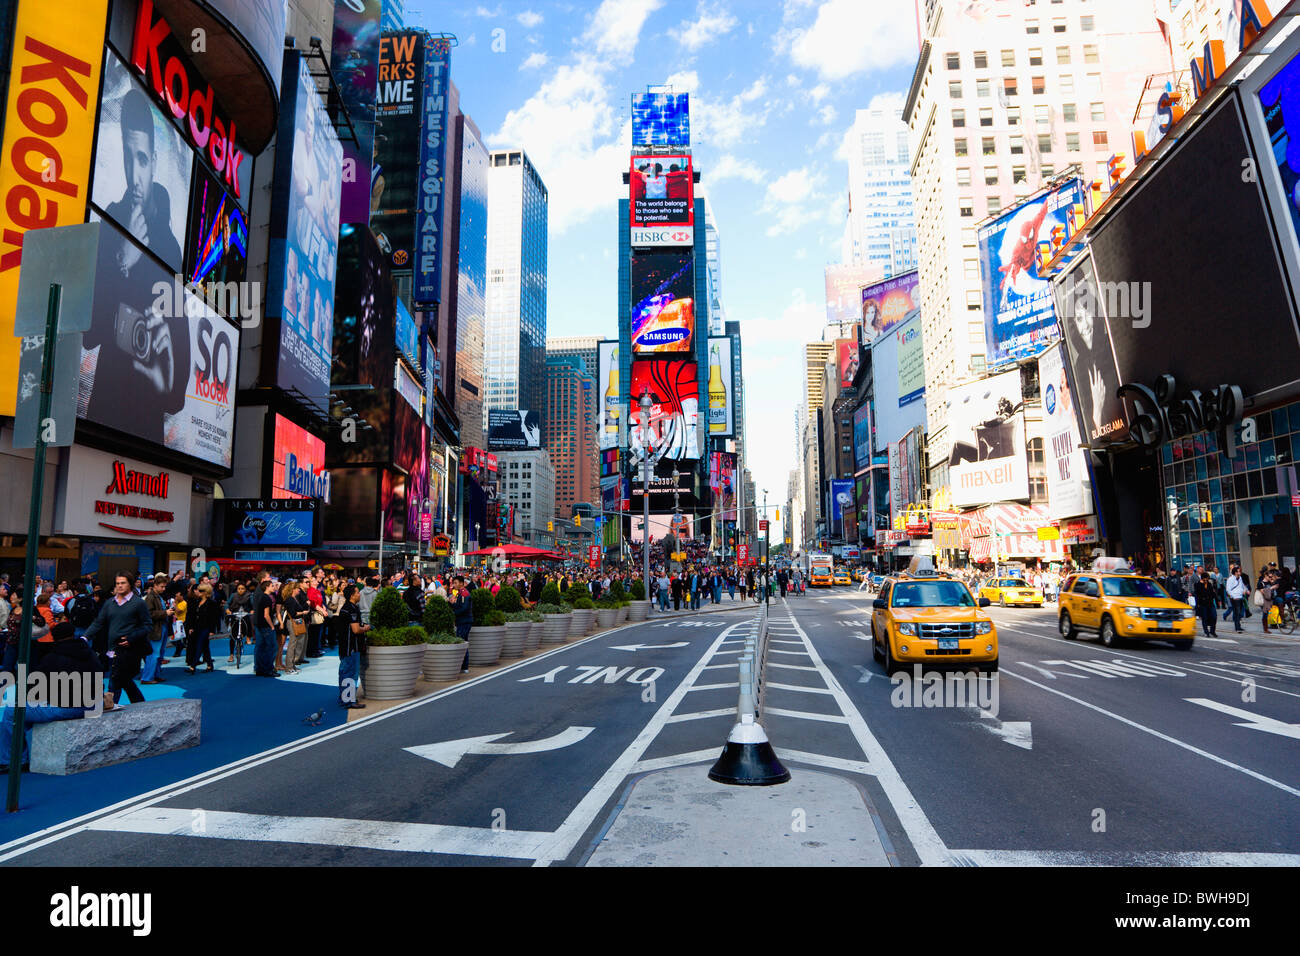 USA, New York, Manhattan, People walking in Times Square at the junction of 7th Avenue and Broadway busy with yellow - Stock Image